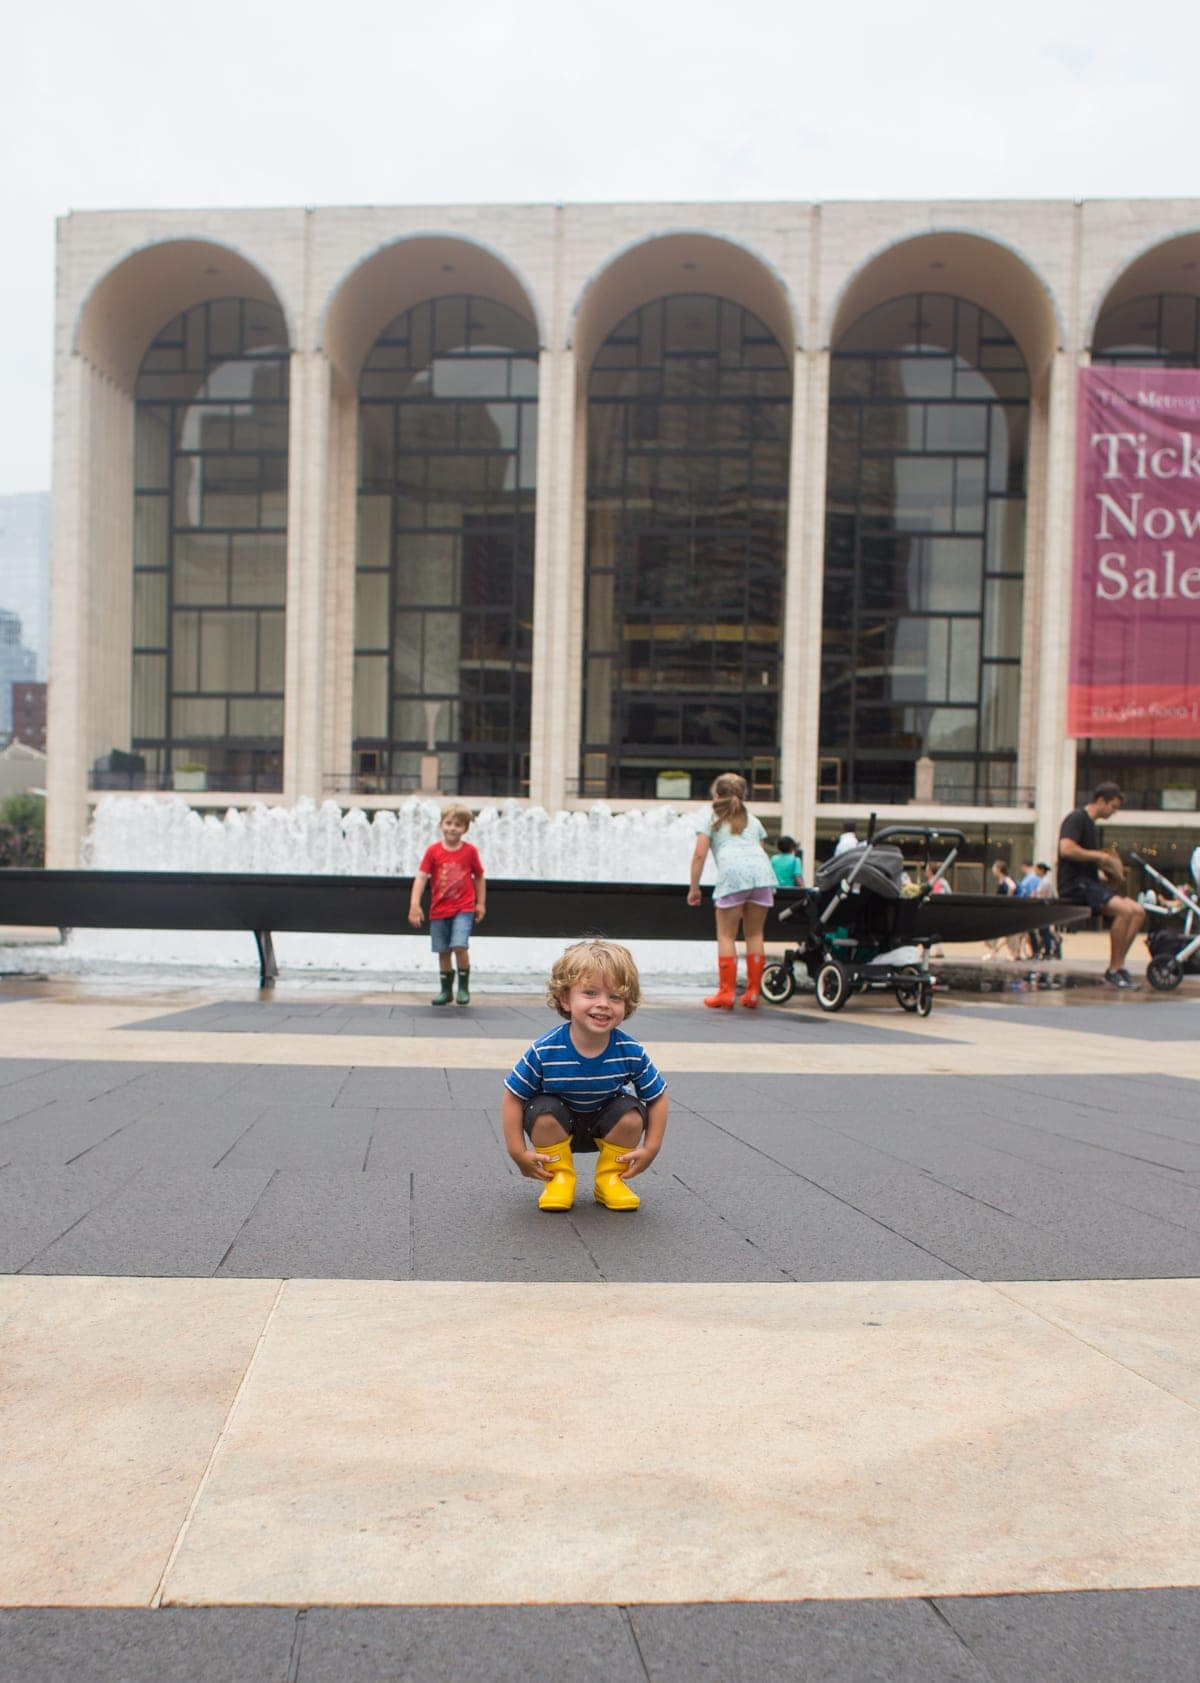 Brennan family at the Lincoln center